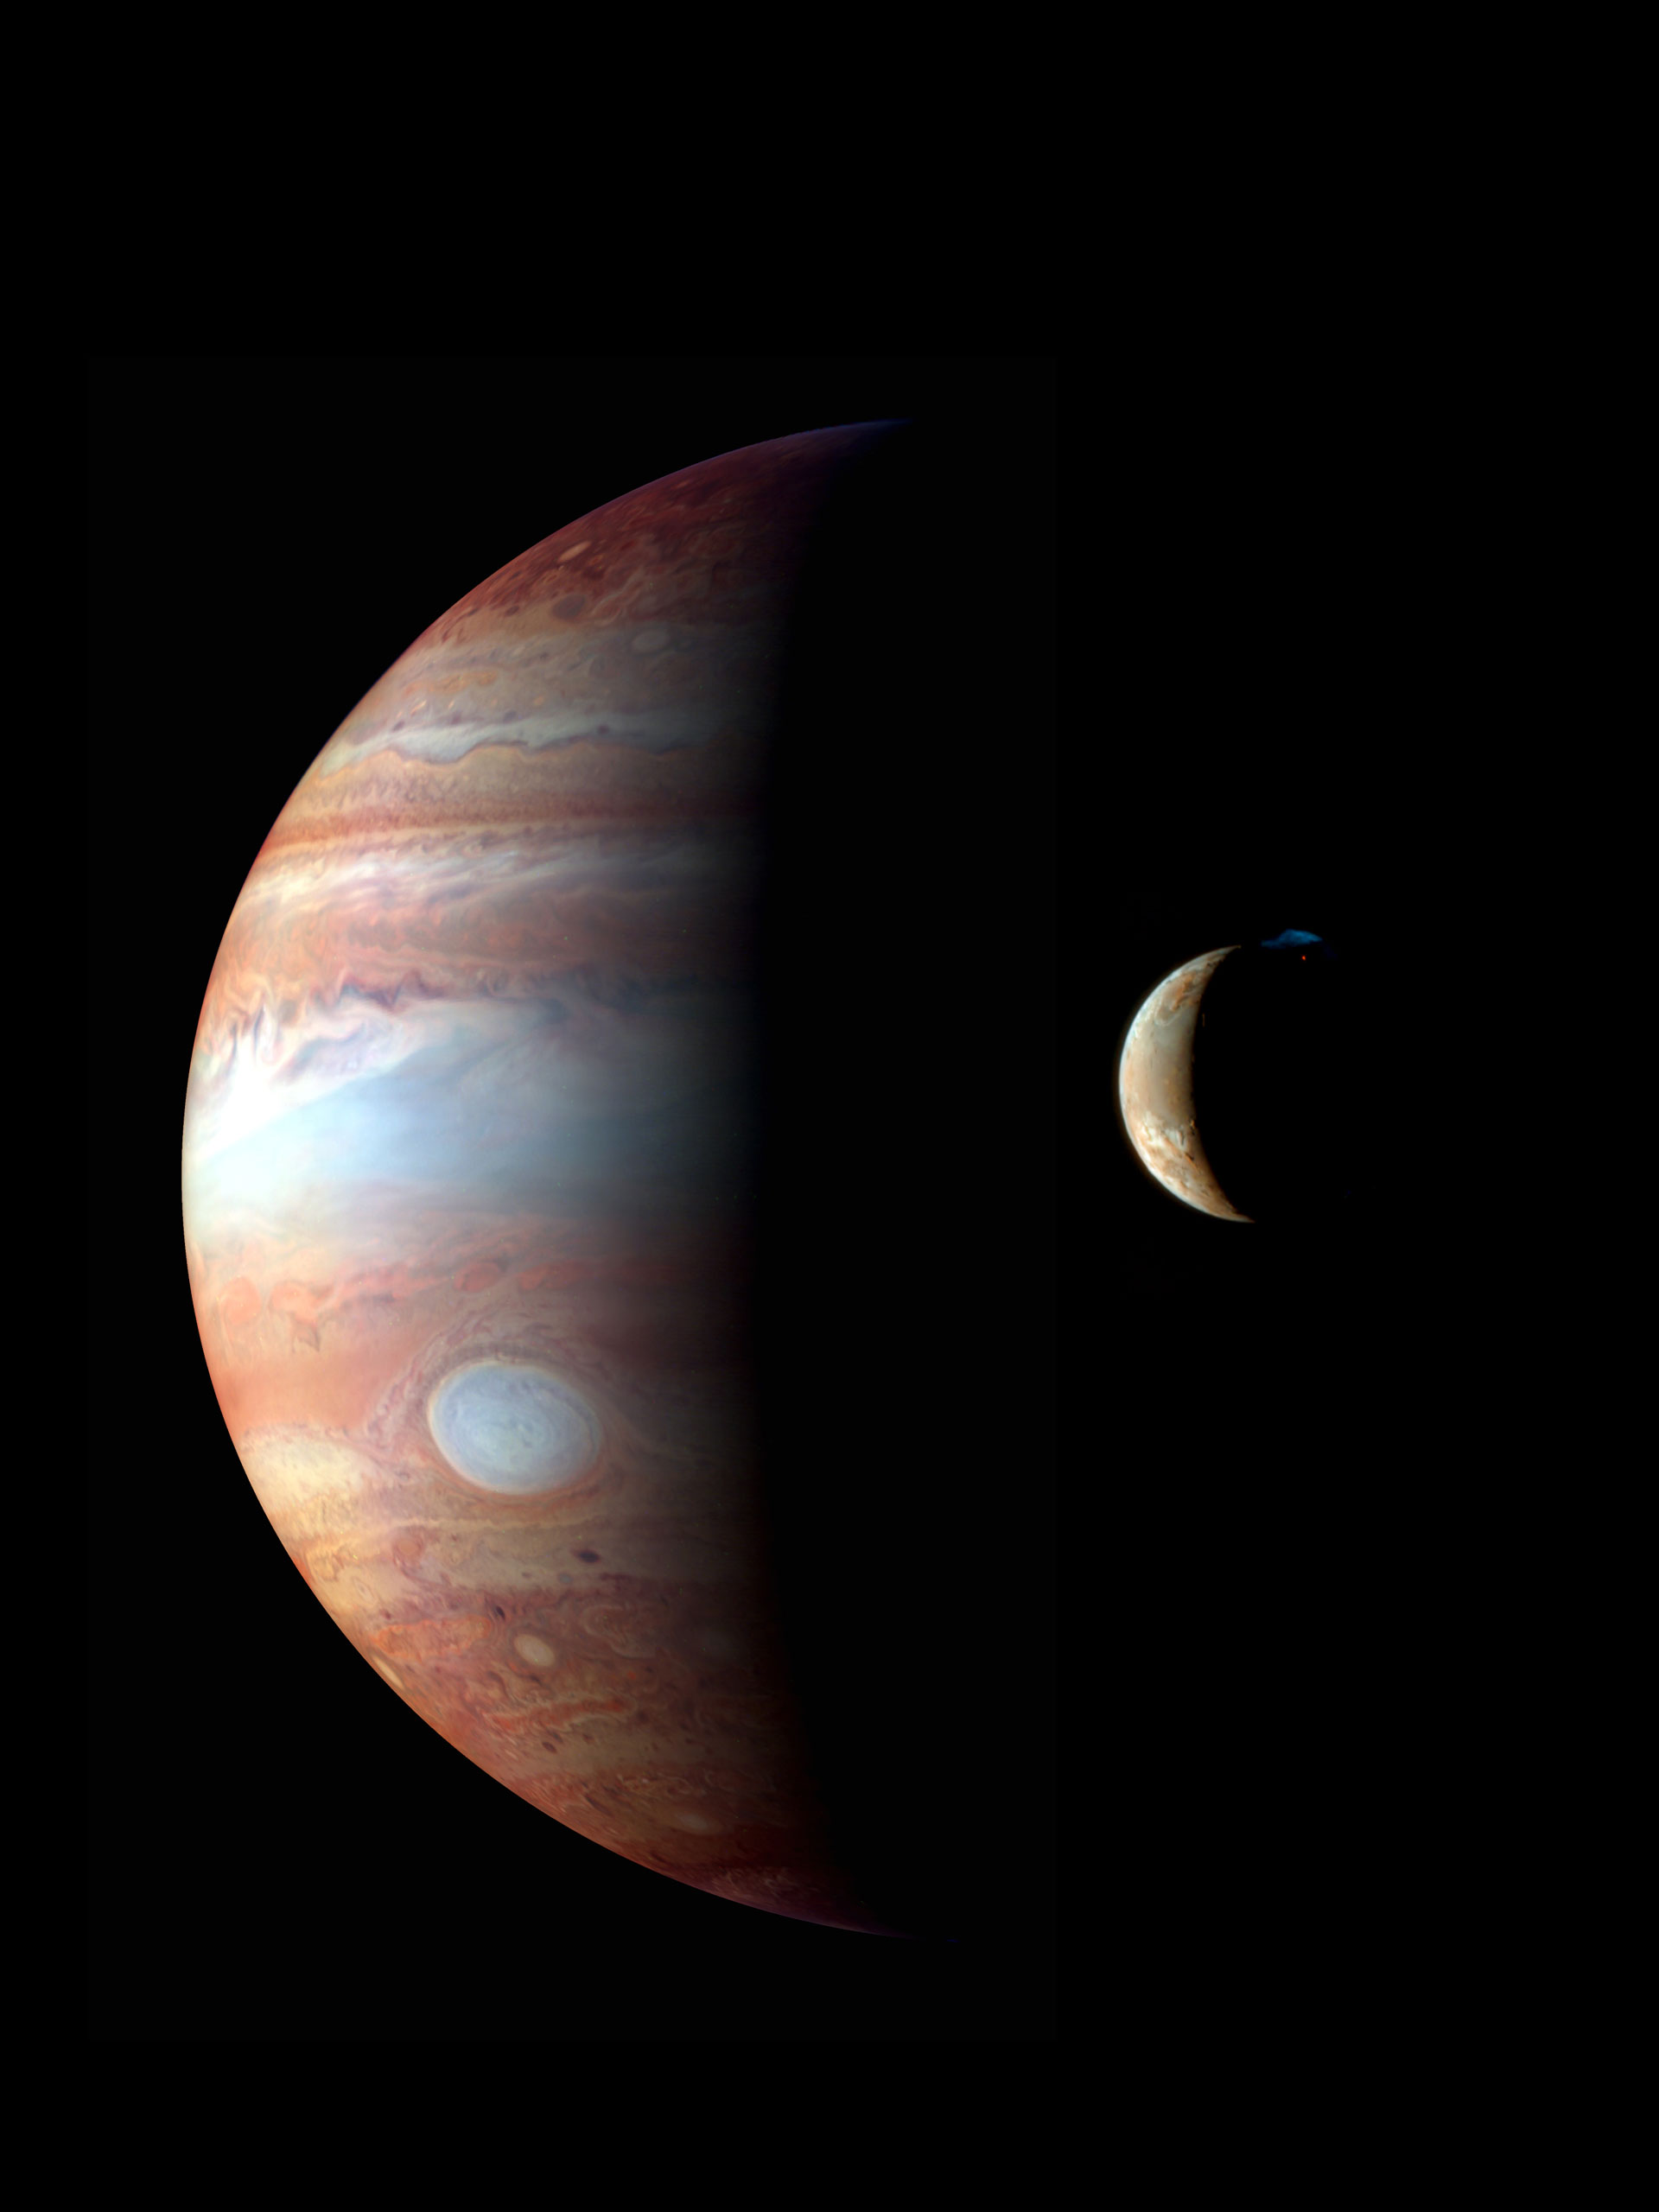 A montage of New Horizons' images of Jupiter and its volcanic moon Io, taken during the spacecraft's Jupiter flyby in early 2007.